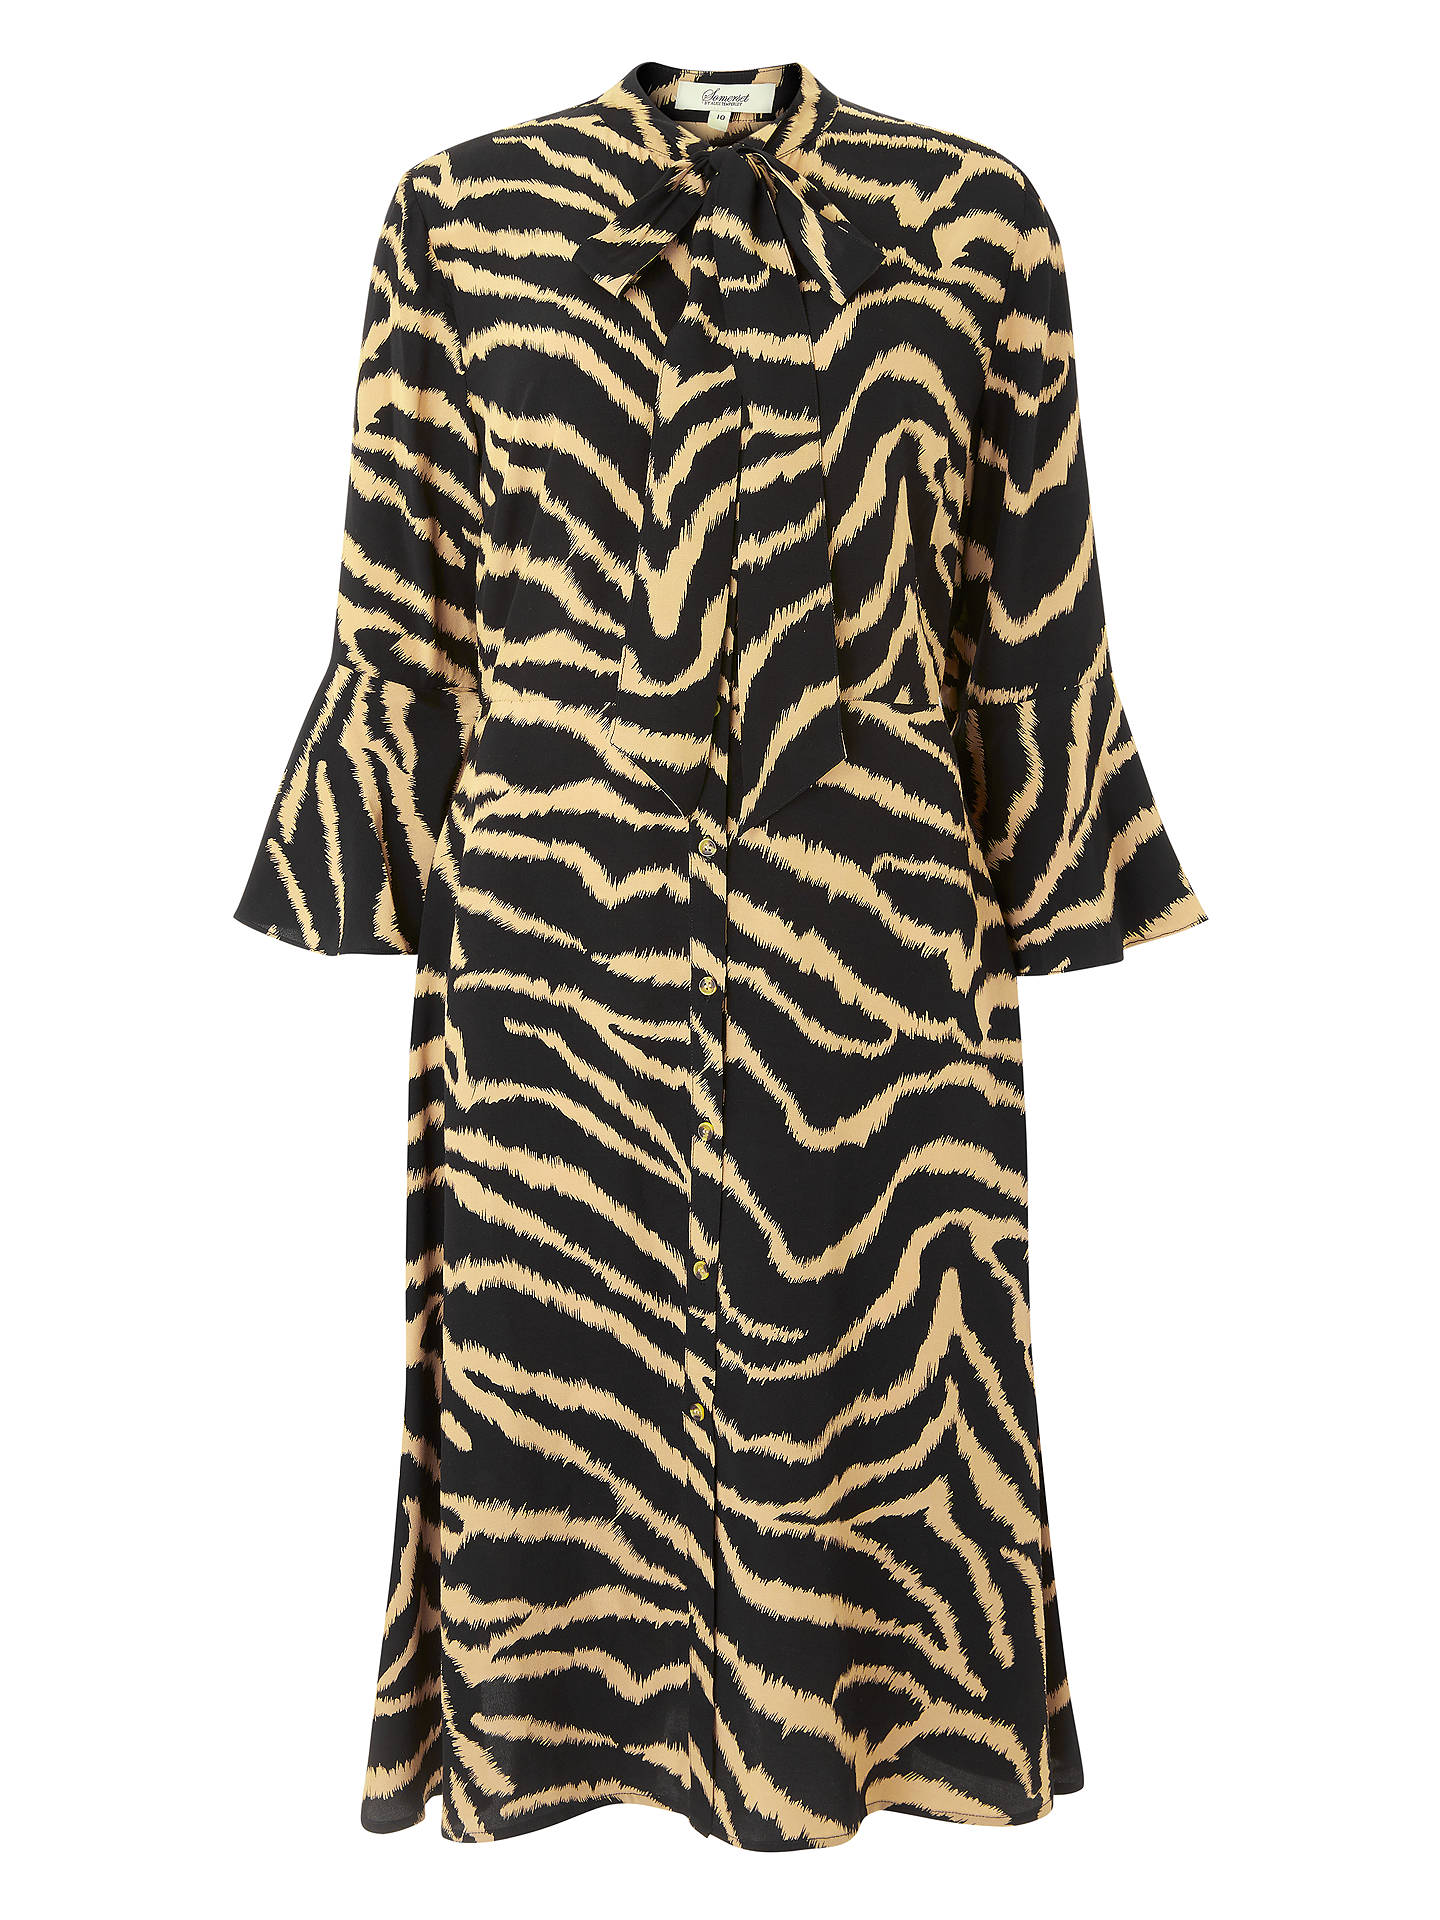 BuySomerset by Alice Temperley Zebra Long Sleeve Dress, Black/Multi, 10 Online at johnlewis.com